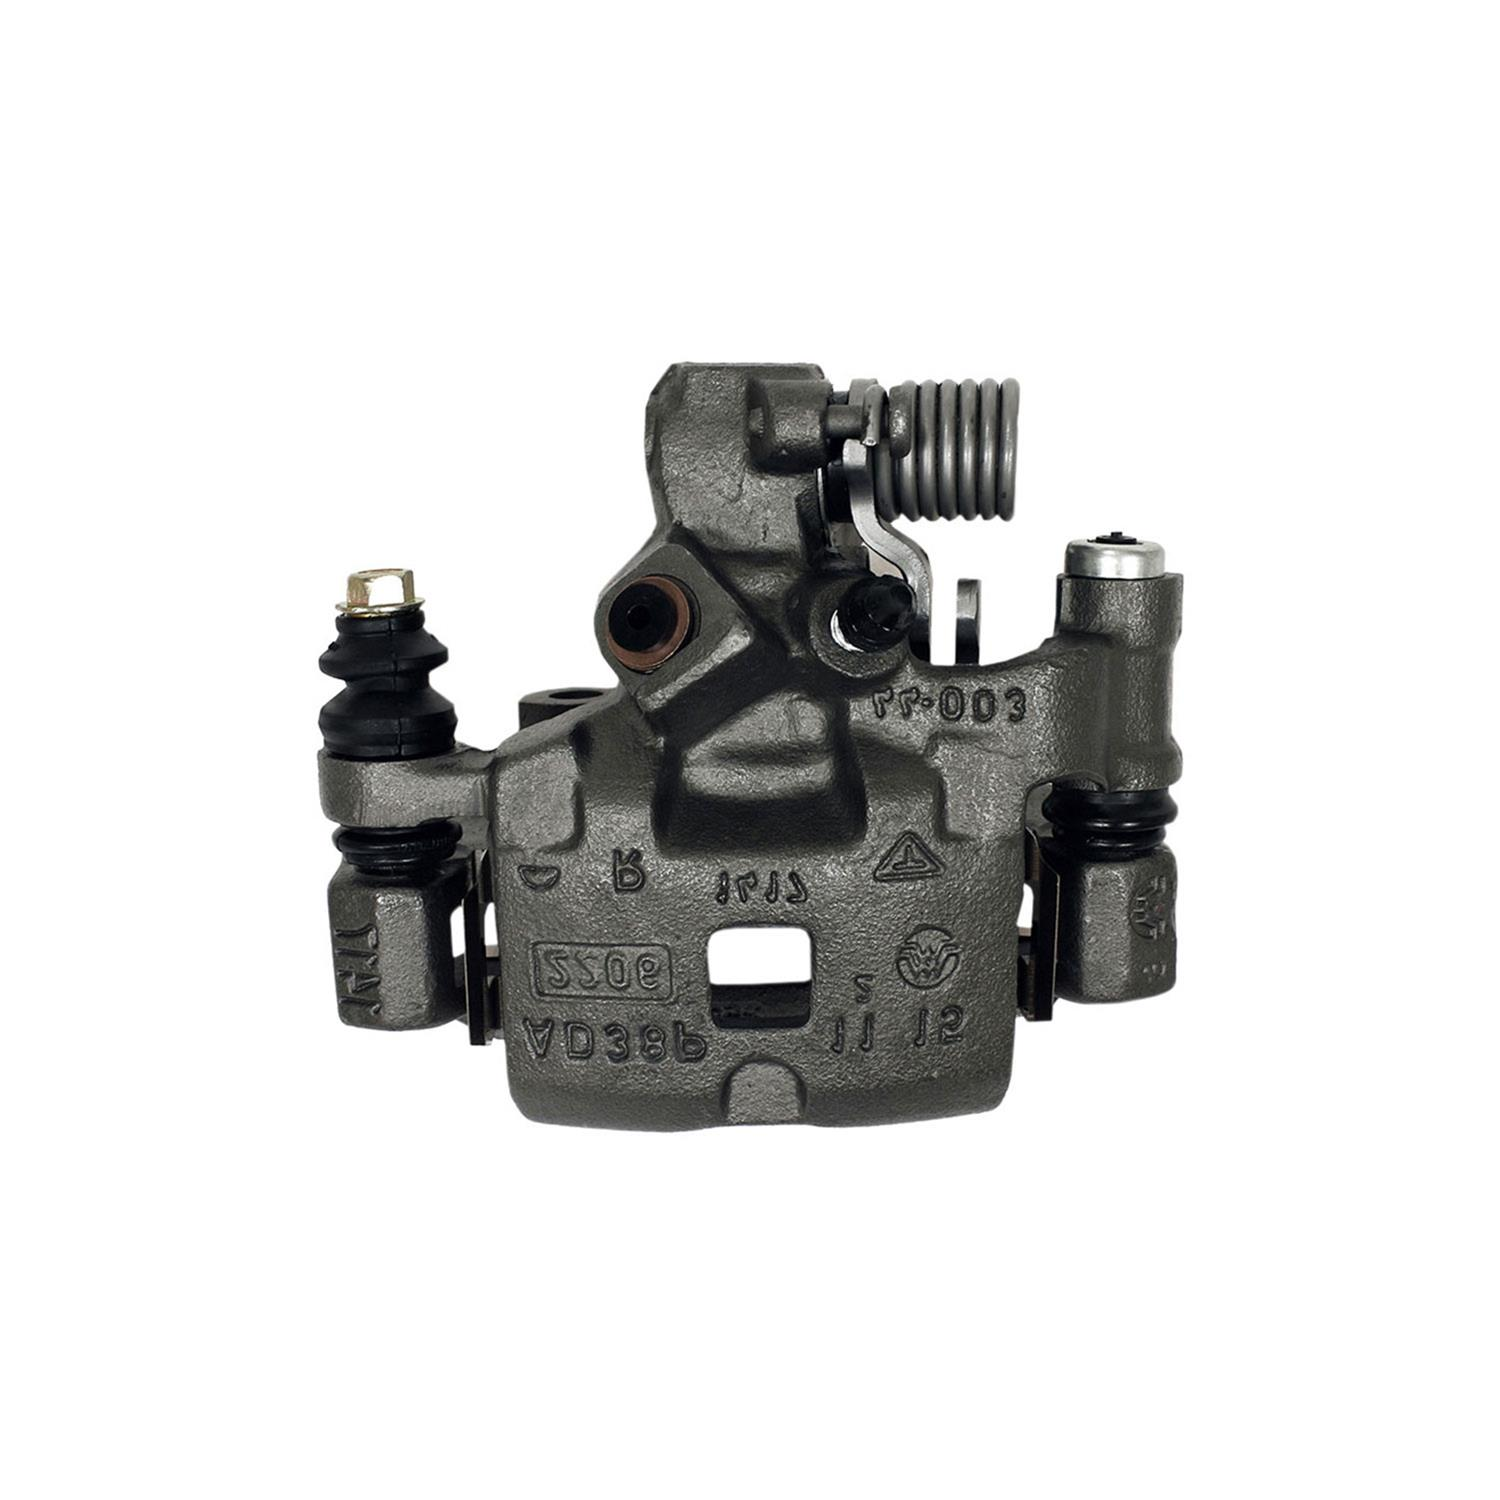 Power Stop L4543 Rear Autospecialty Stock Replacement Caliper